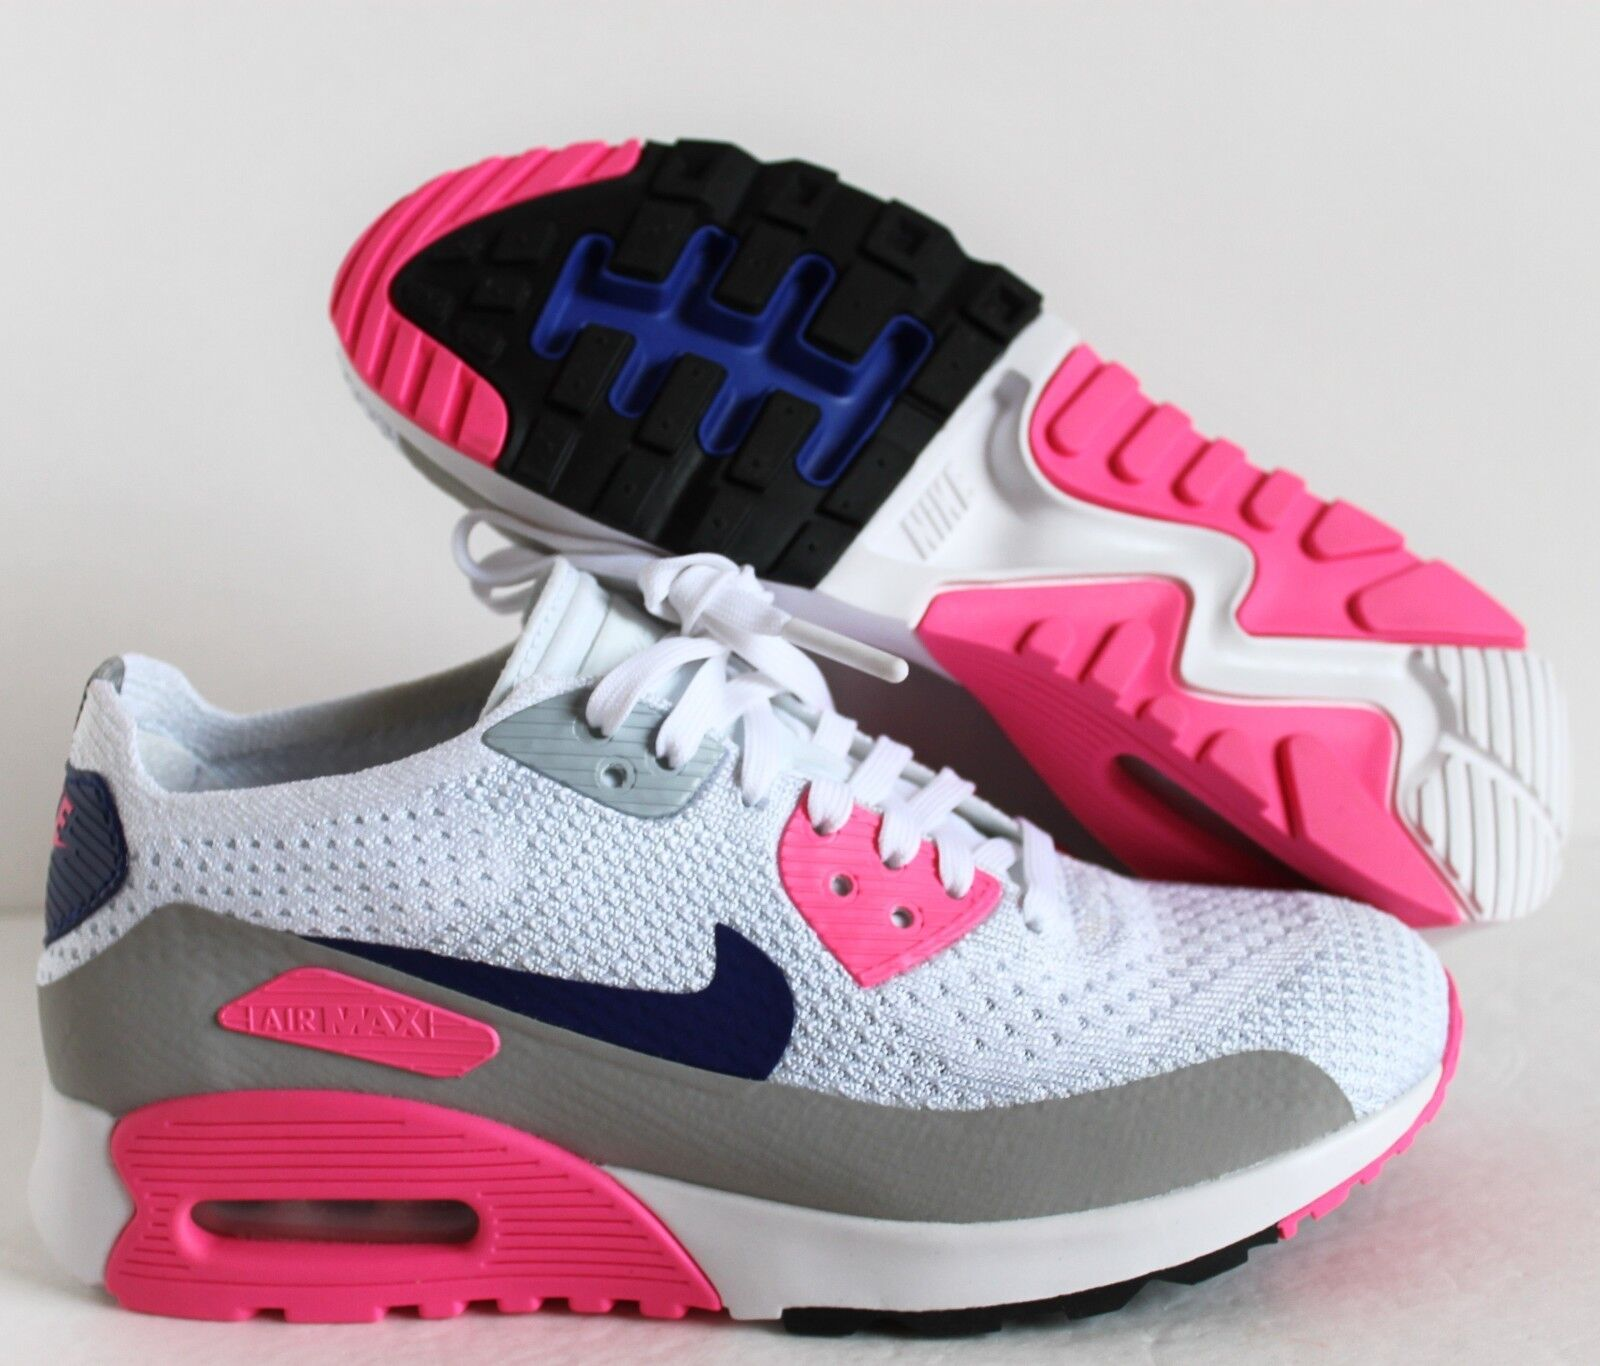 NIKE WOMEN AIR MAX 90 ULTRA 2.0 FLYKNIT WHITE LASER PINK SZ 6 [881109 101]